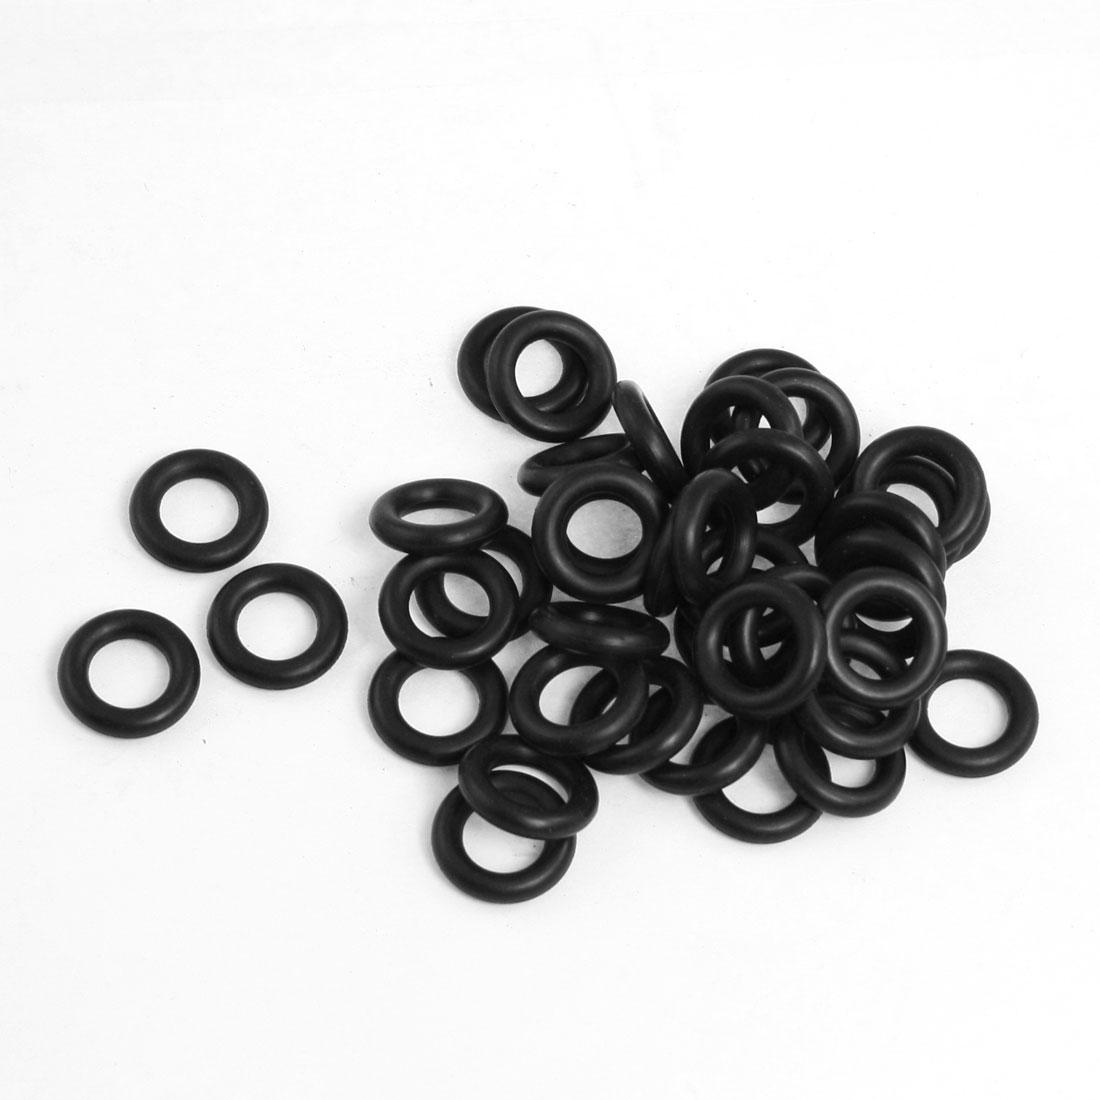 50 Pcs 16mm x 3.5mm x 9mm Mechanical Black NBR O Rings Oil Seal Washers